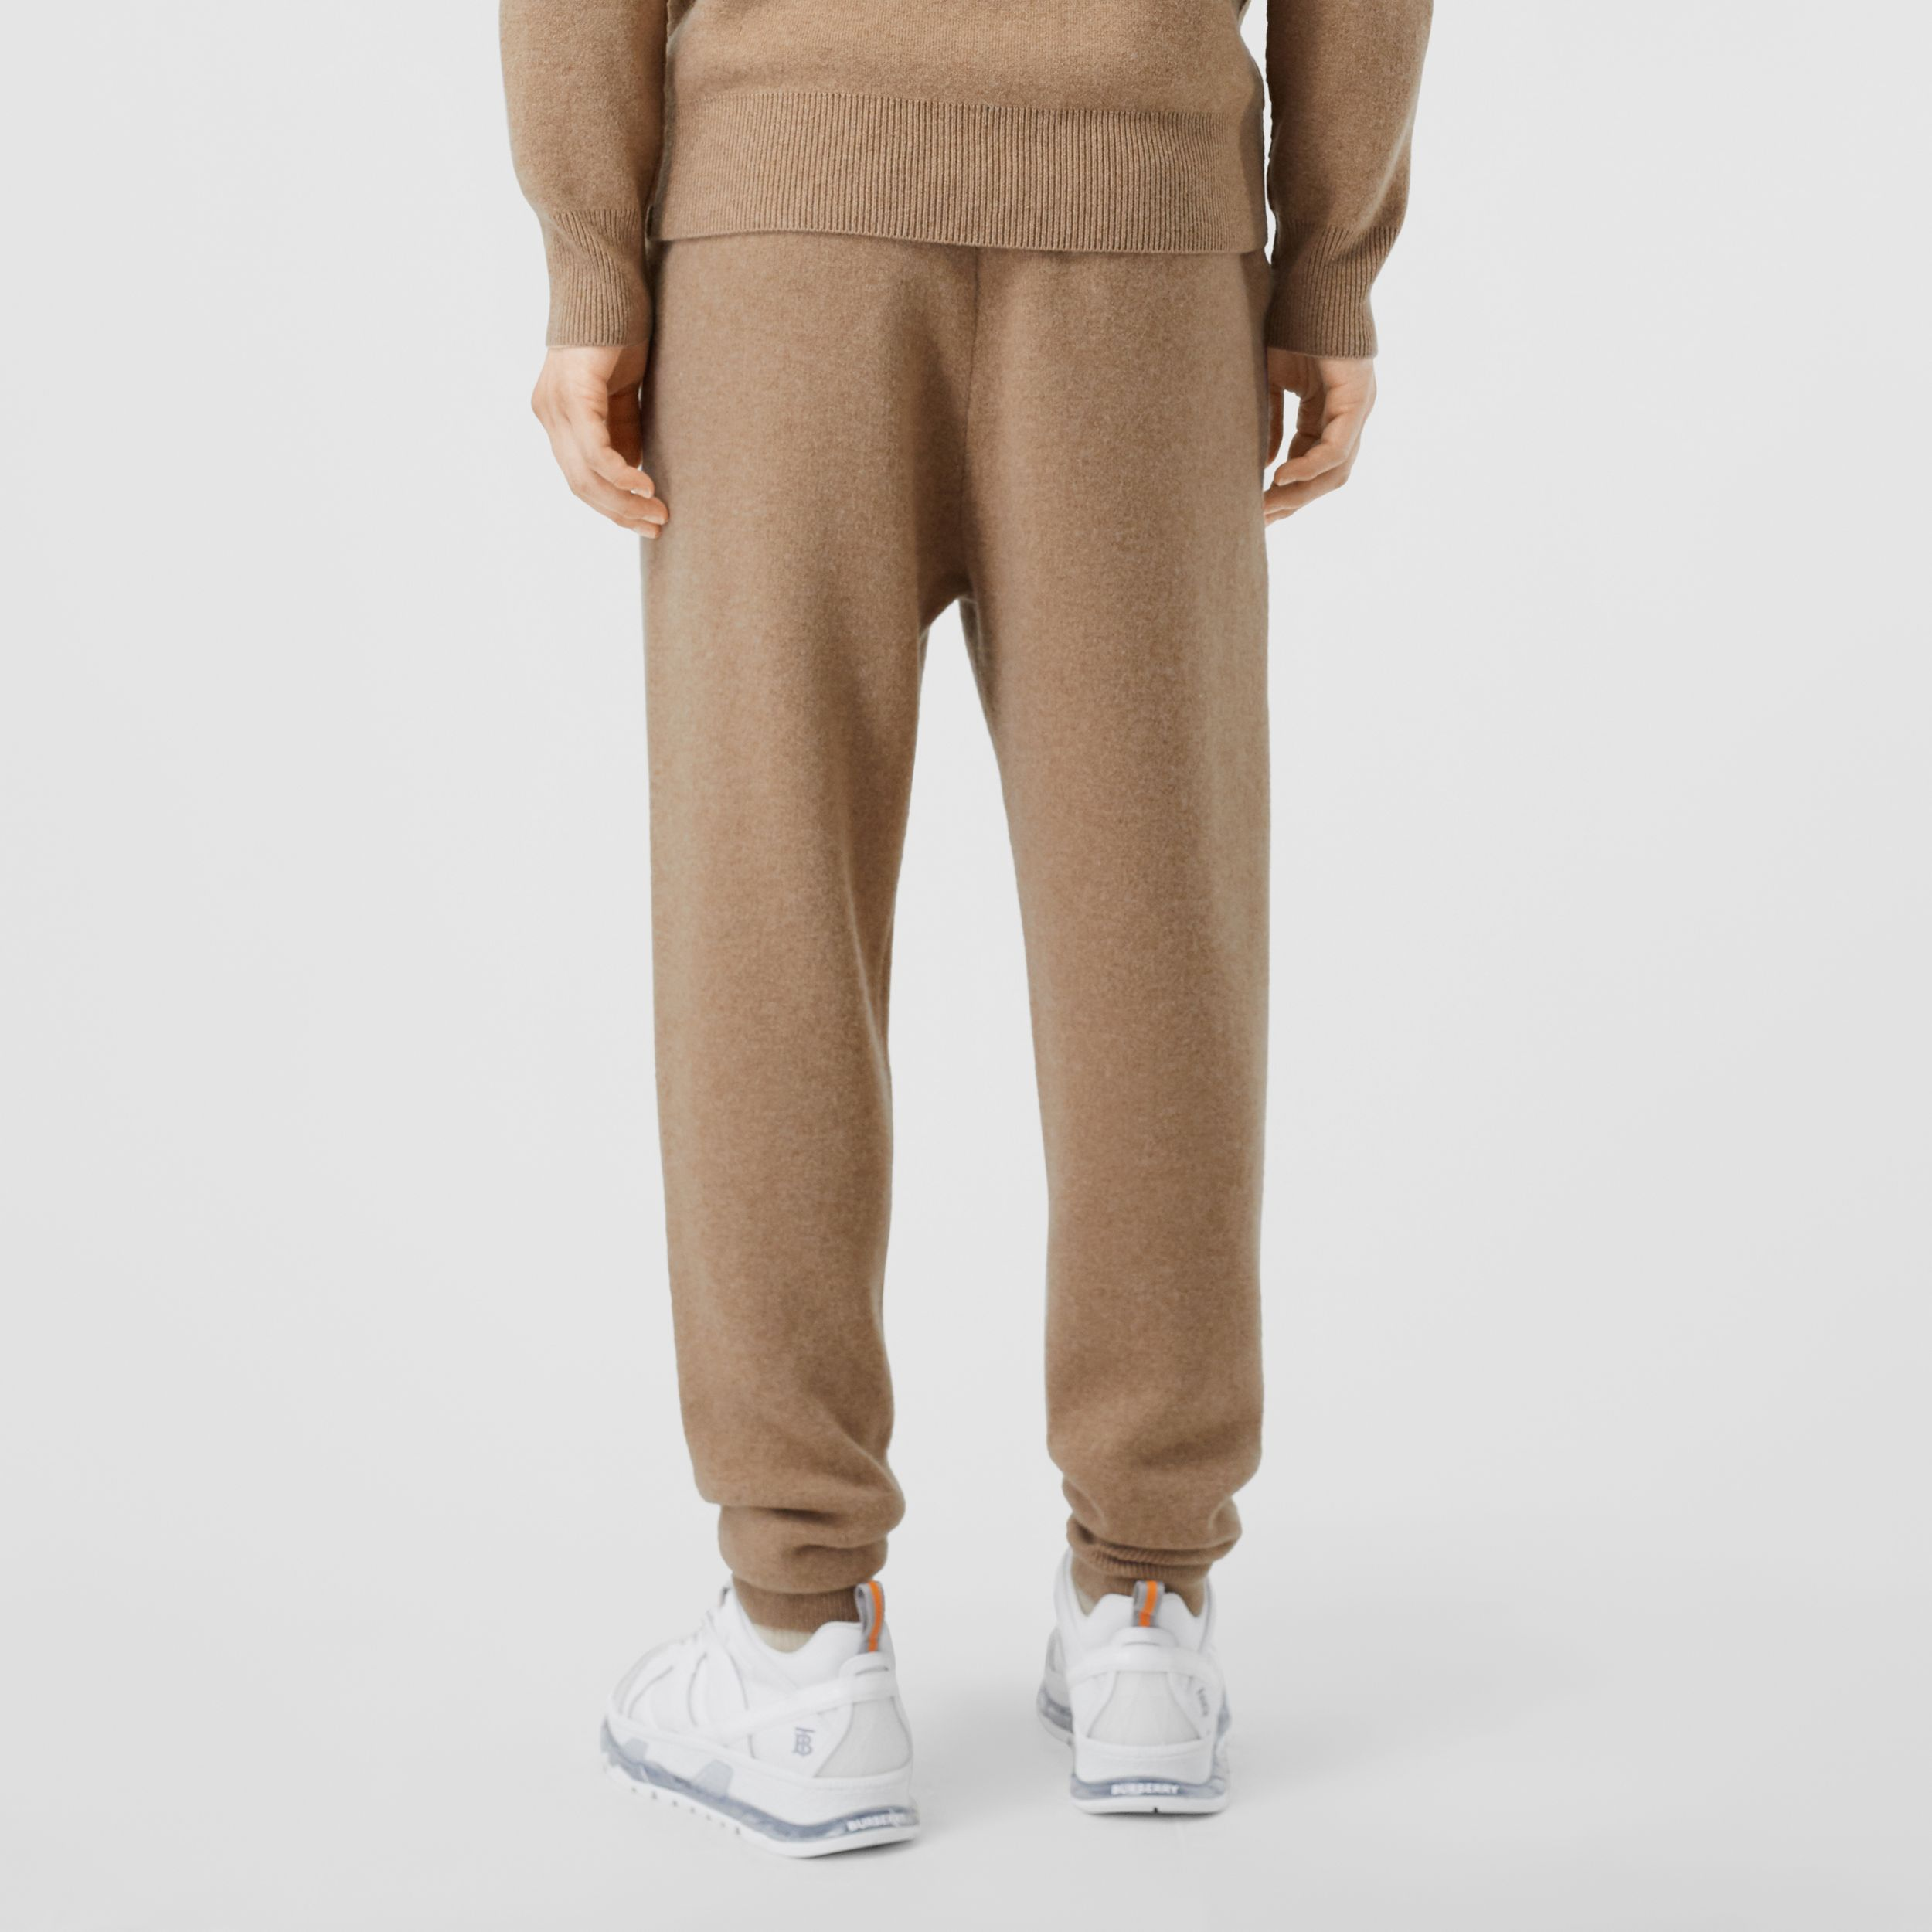 Monogram Motif Cashmere Blend Jogging Pants in Pale Coffee - Men | Burberry - 3